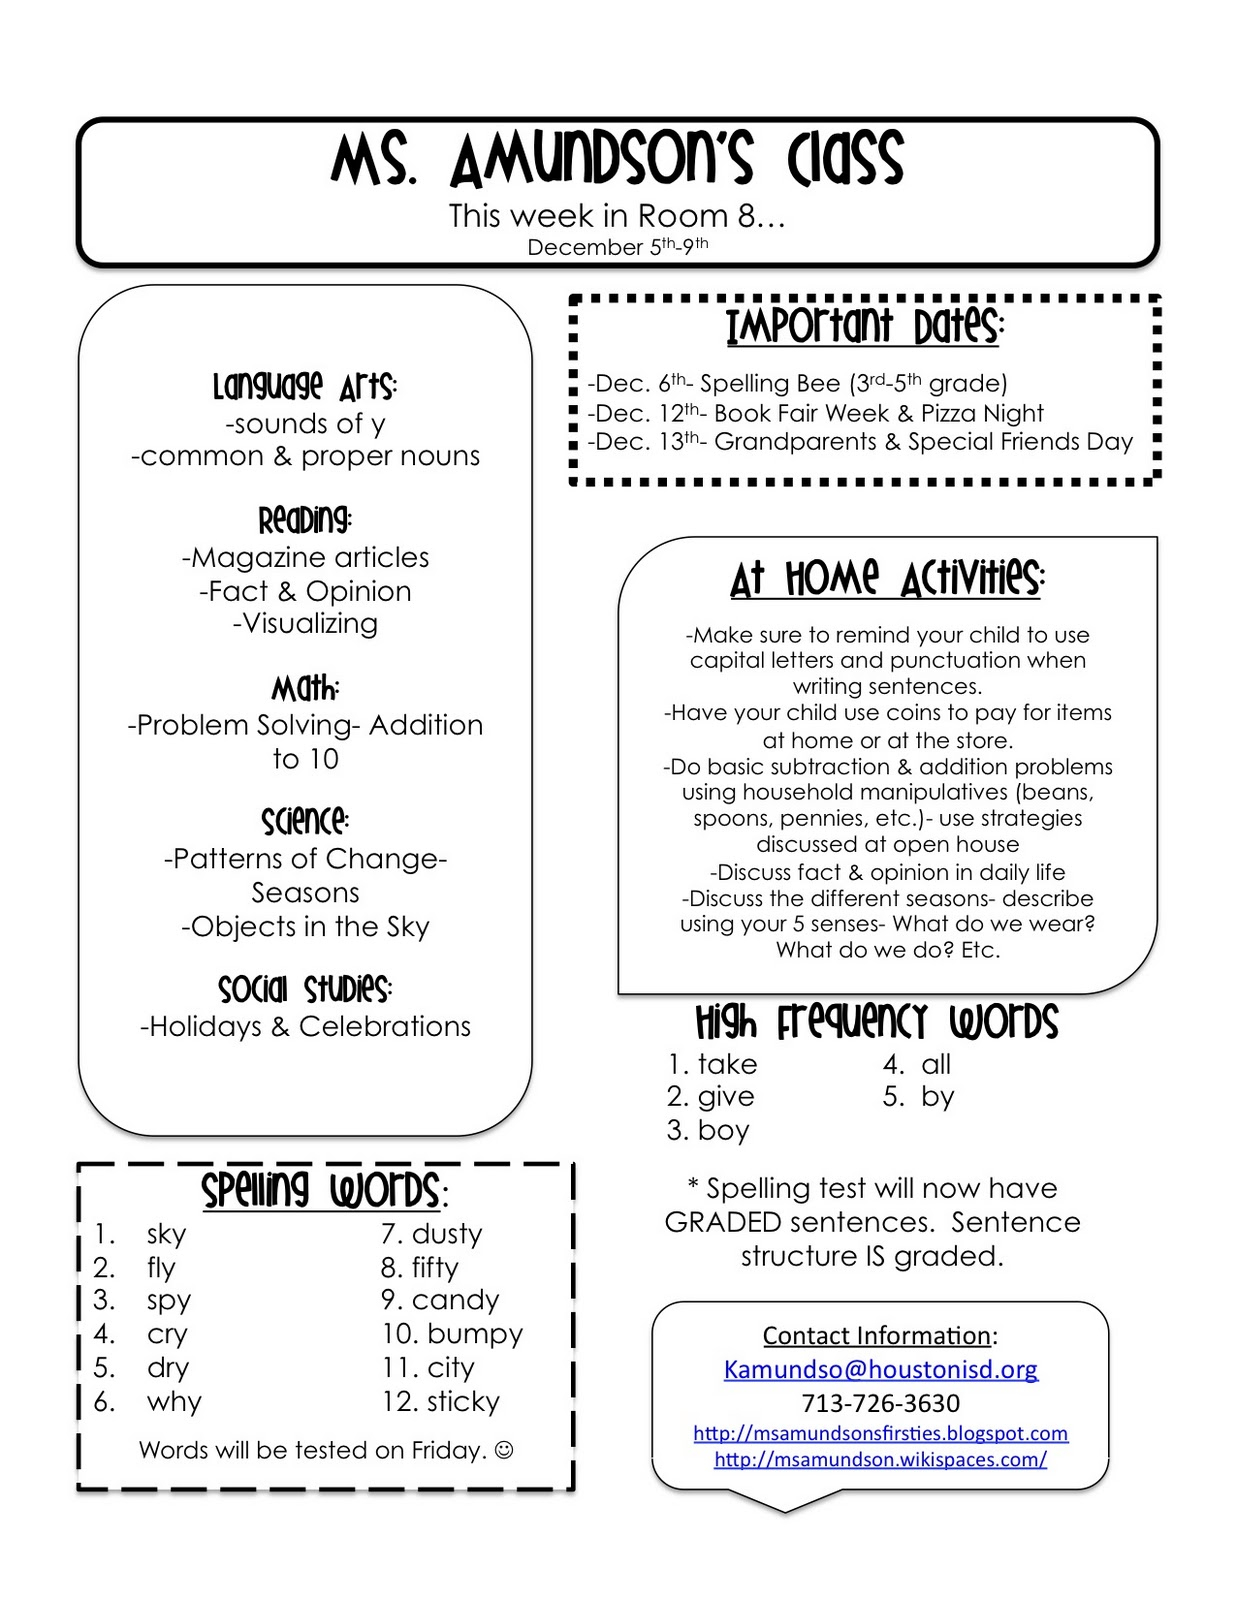 Weekly Letter to Parents Template - High School Newsletter Templates Free High School Newsletter